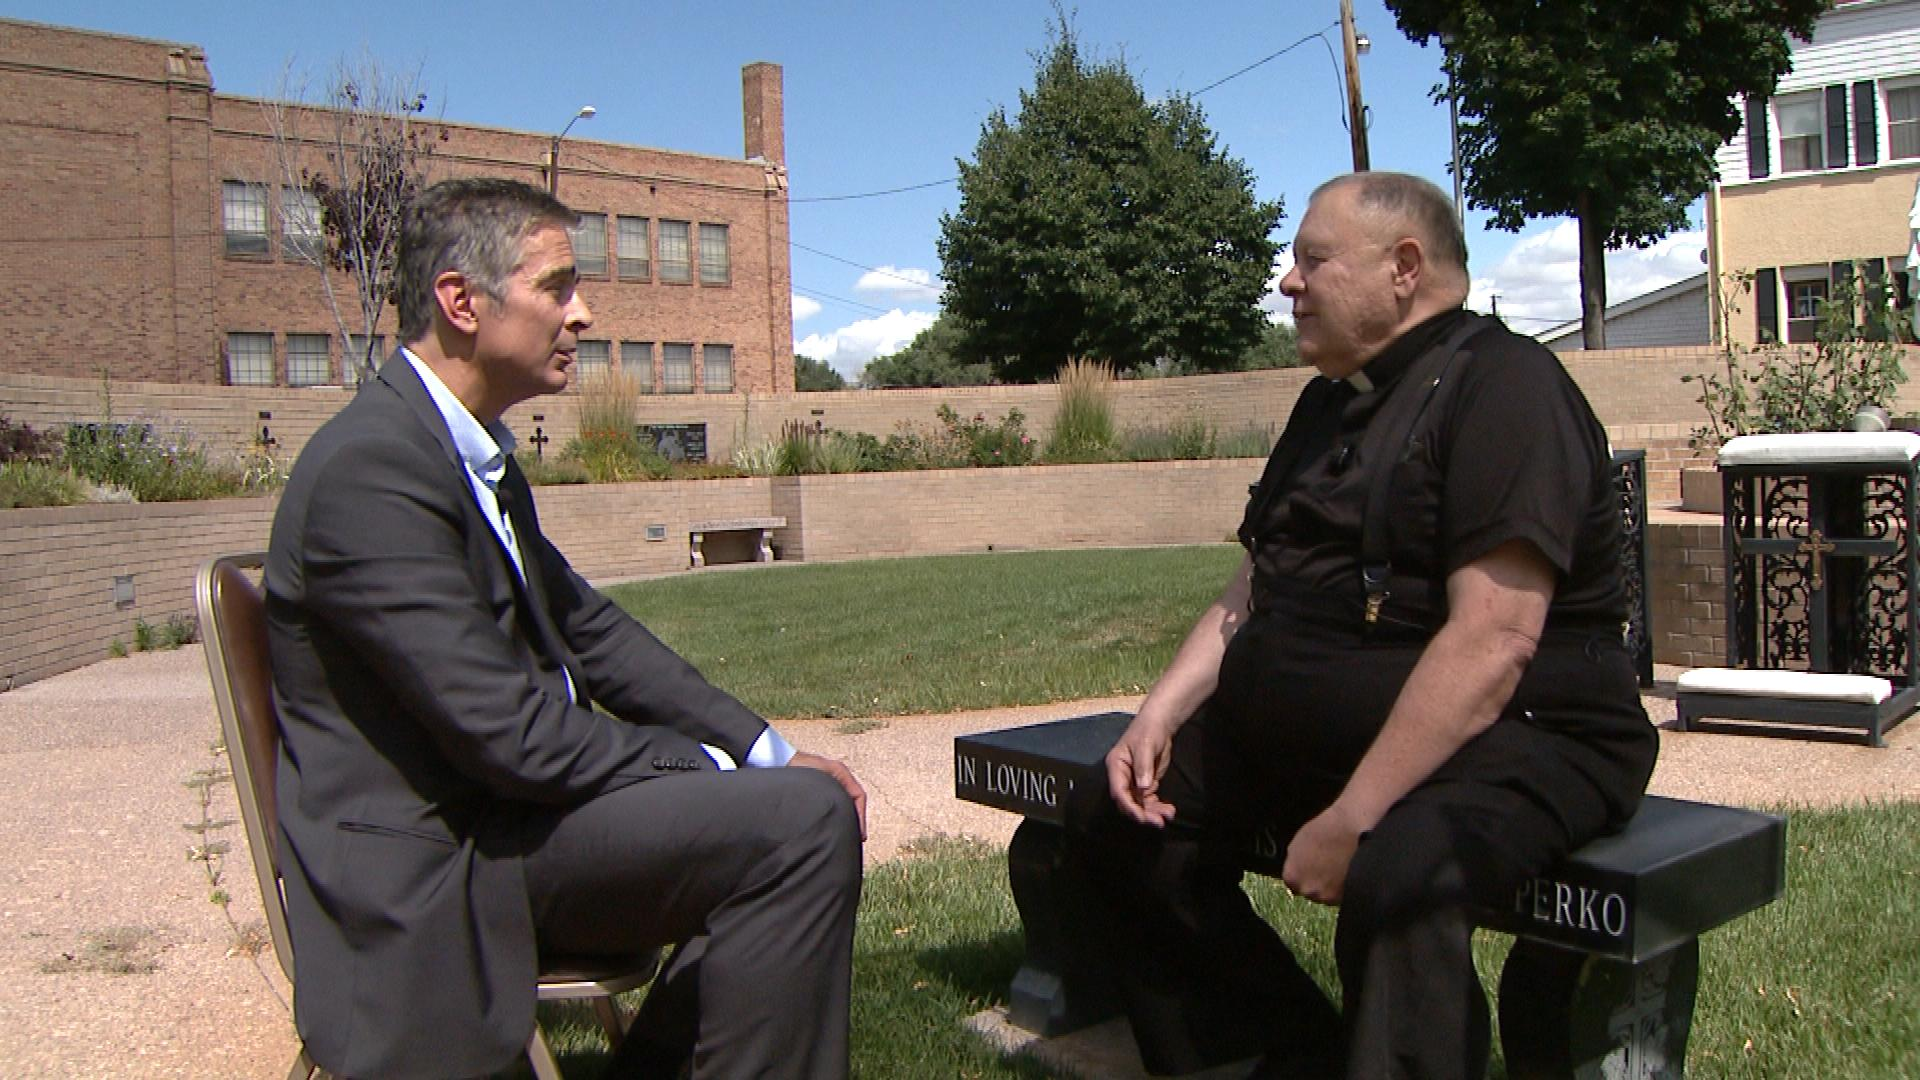 CBS4's Alan Gionet talks with Father Ben Bacino (credit: CBS)